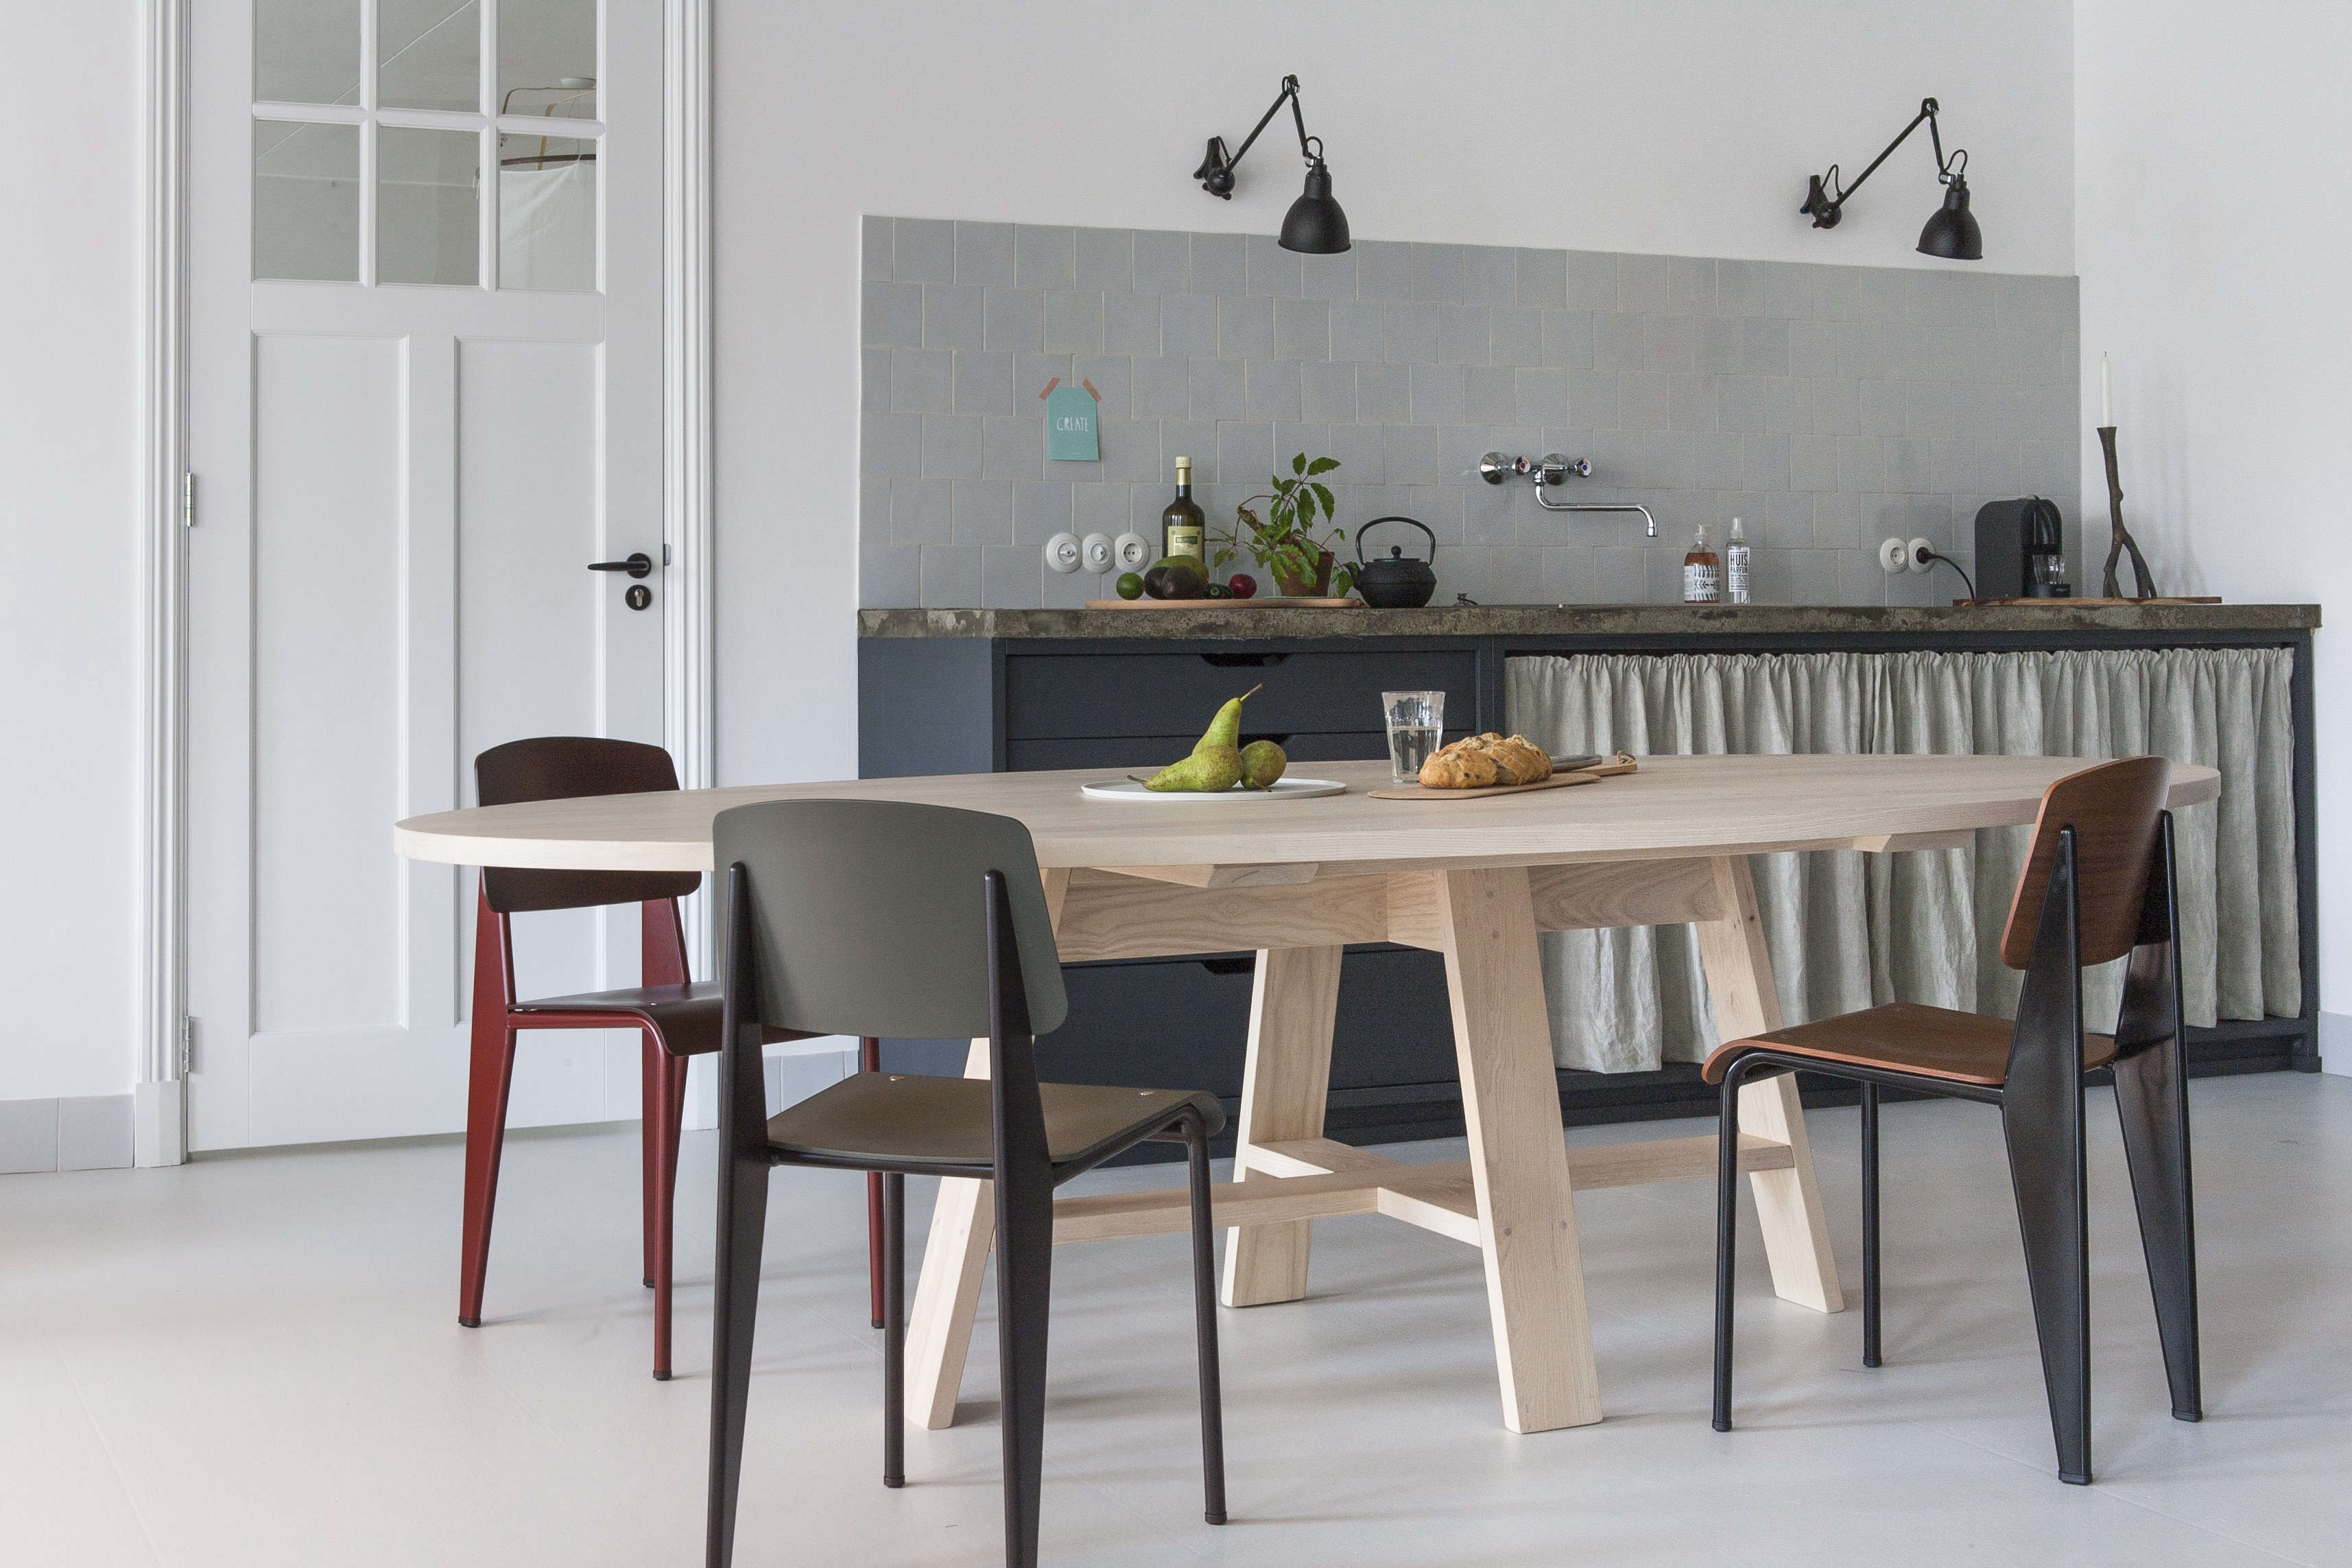 Steal This Look: A Rustic Modern Kitchen in the Netherlands